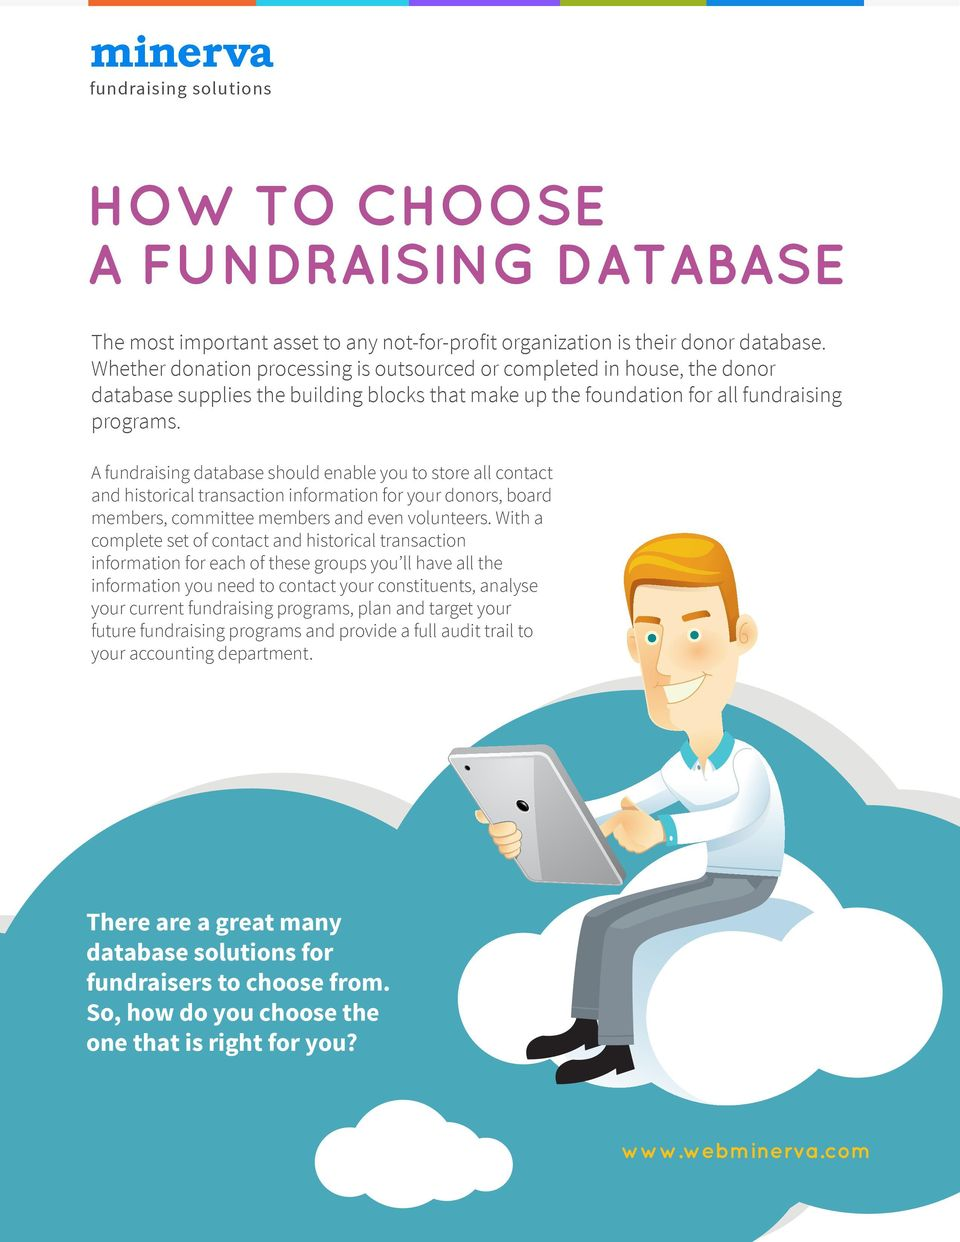 A fundraising database should enable you to store all contact and historical transaction information for your donors, board members, committee members and even volunteers.